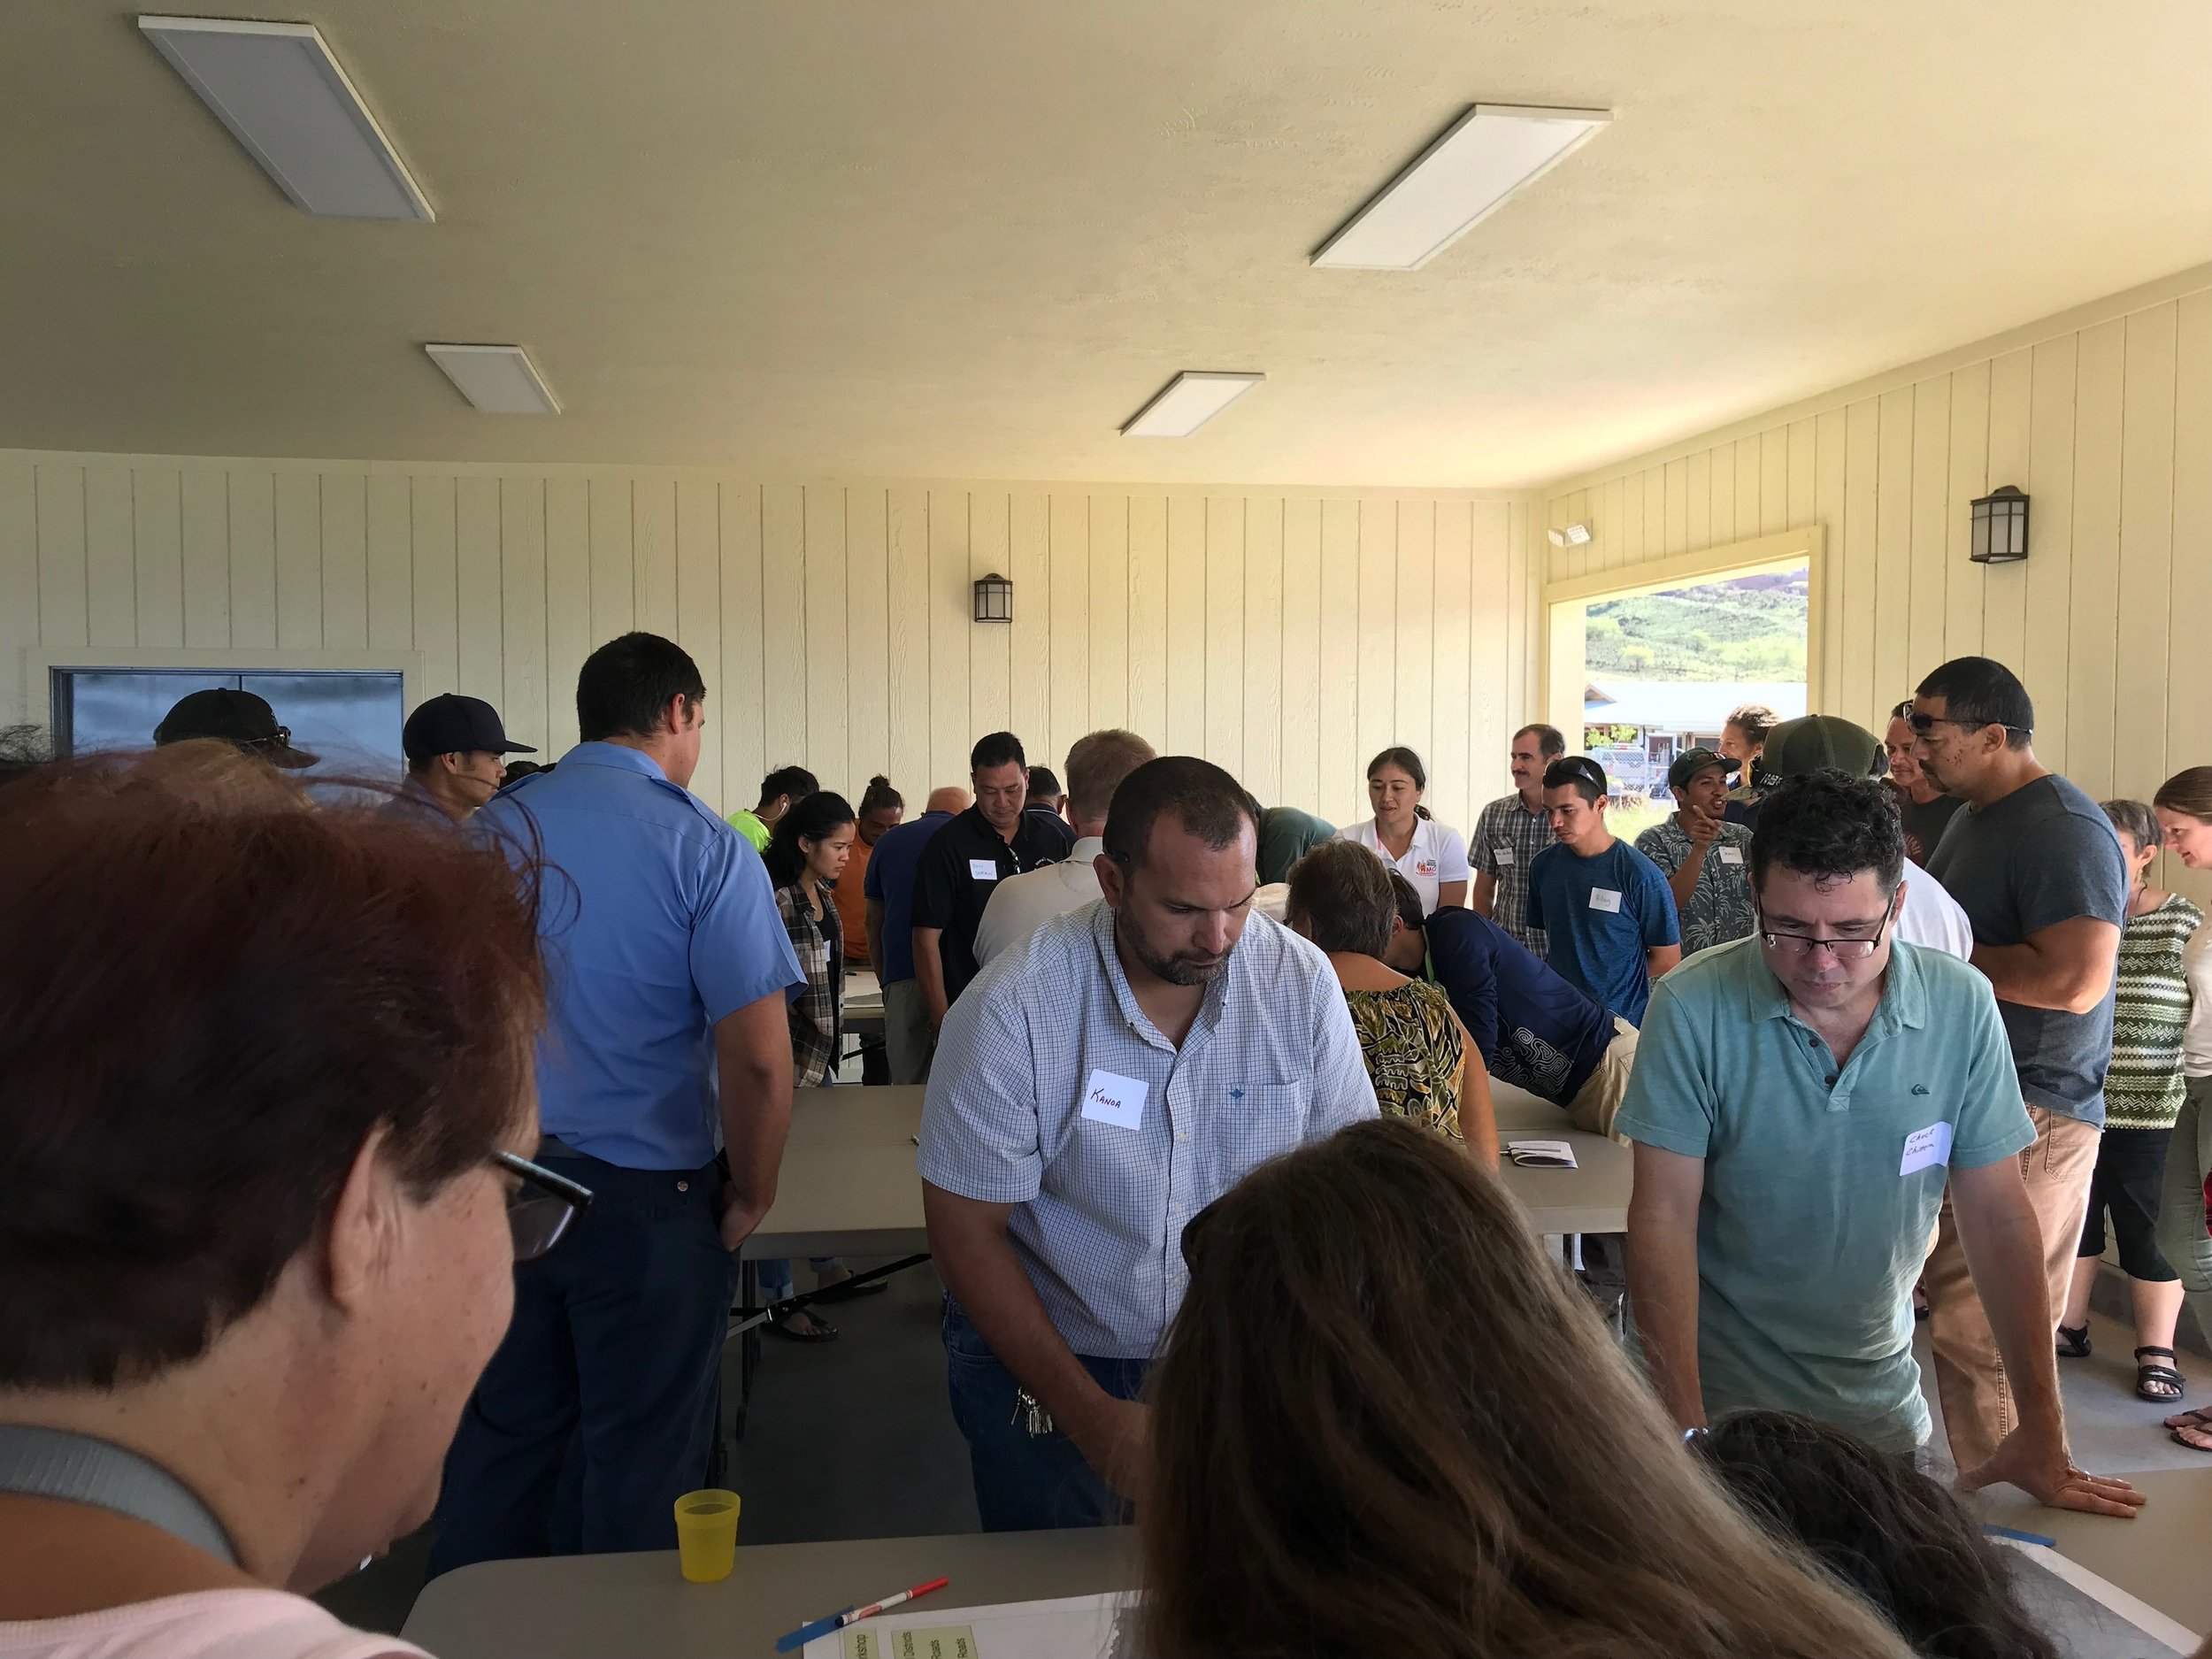 Hawaii Island Kailapa Vegetative Fuels Management Collaborative Action Planning Workshop_2_26_2019_47.jpg